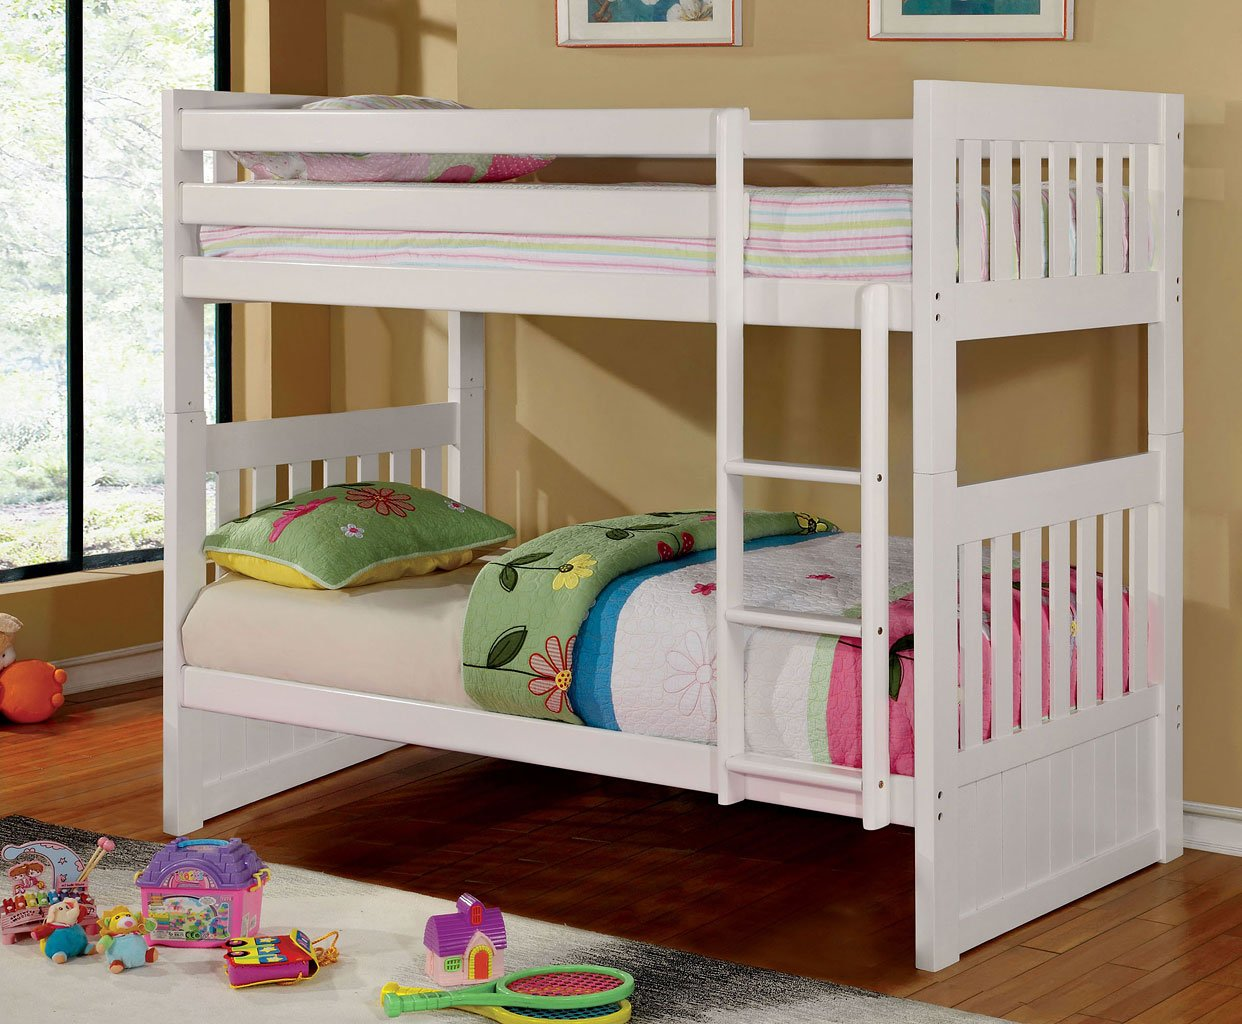 Bedroom Furniture Canberra Canberra Twin Twin Bunk Bed White Kids Loft And Bunk